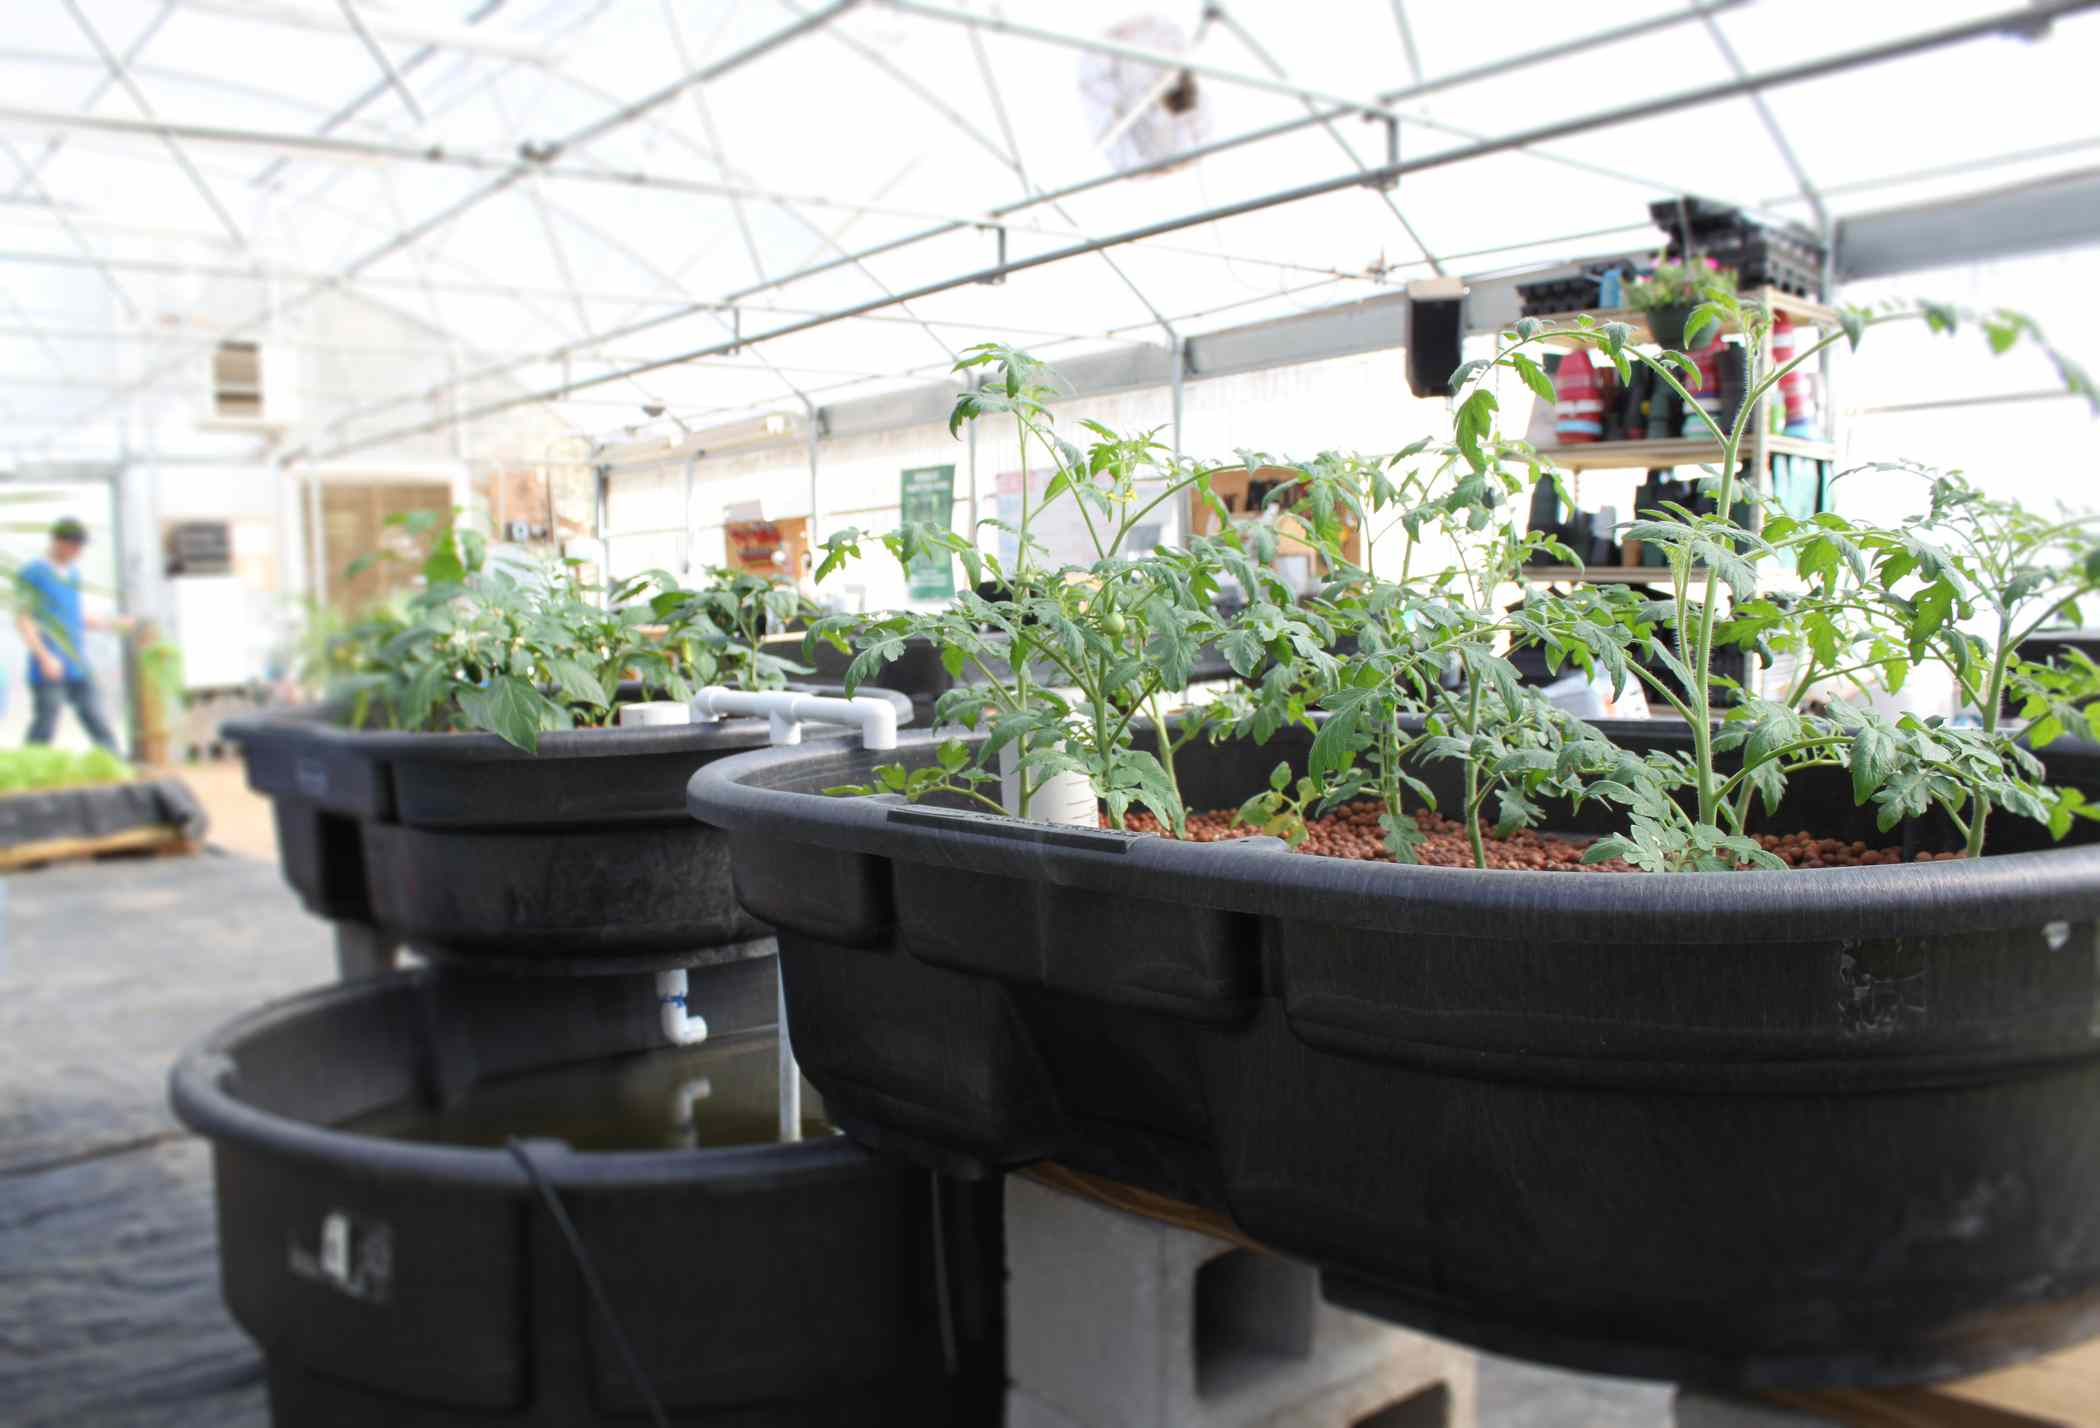 Growing tomatoes in an aquaponic system